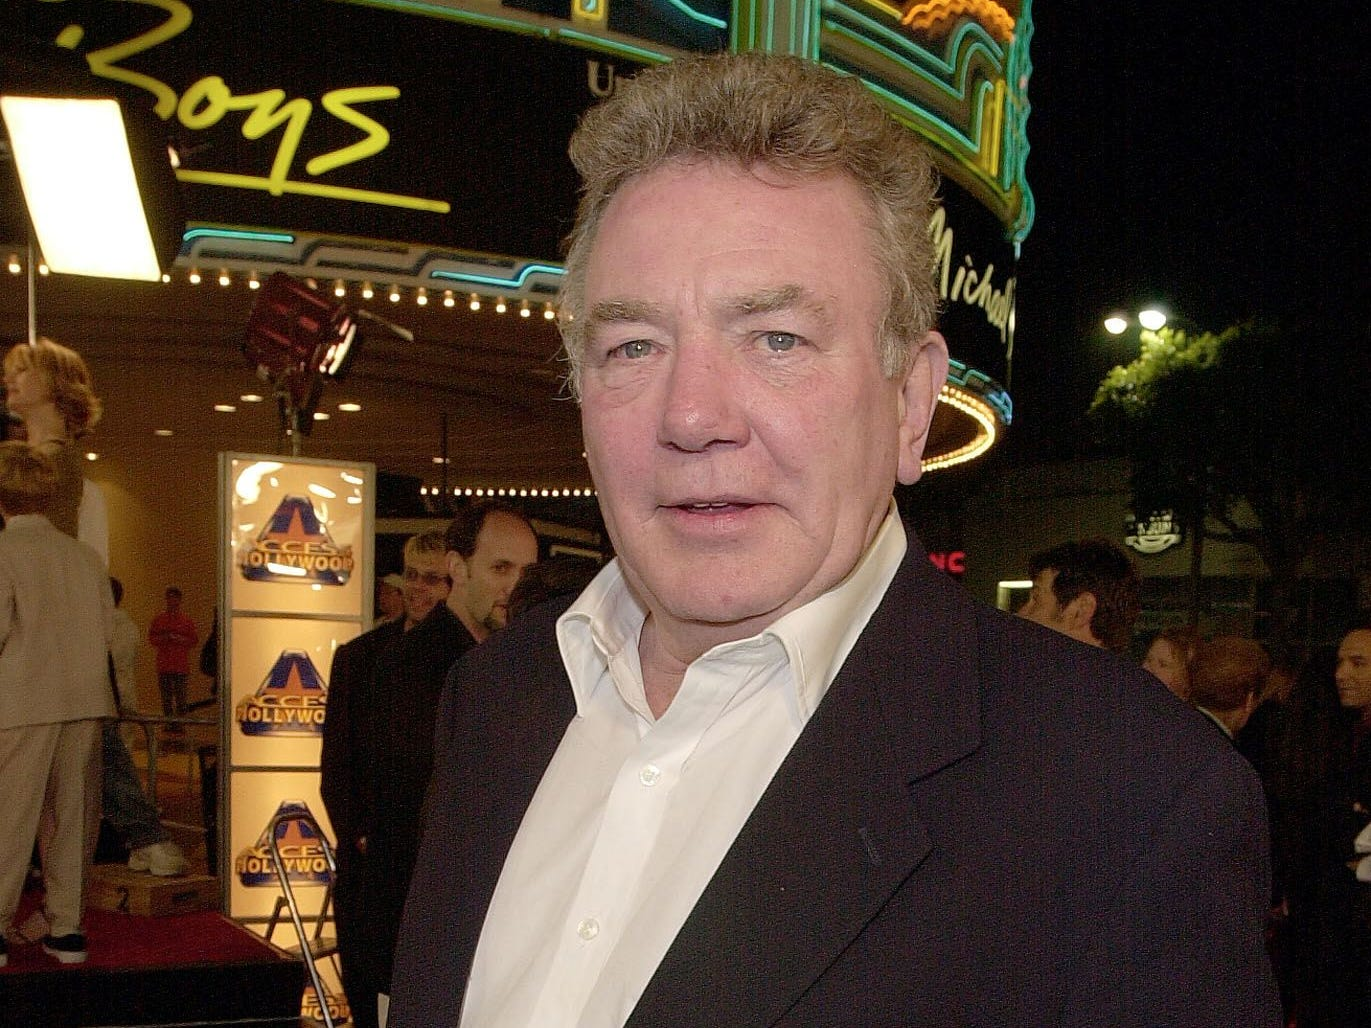 "In this file photo taken on March 14, 2000, British actor Albert Finney arrives to attend the premiere of his new film ""Erin Brockovich"" in Los Angeles. - Veteran British actor Albert Finney, who starred in films including ""Murder on the Orient Express"" and ""Erin Brockovich"", has died at the age of 82, a family spokesman said Friday, February 8, 2019."